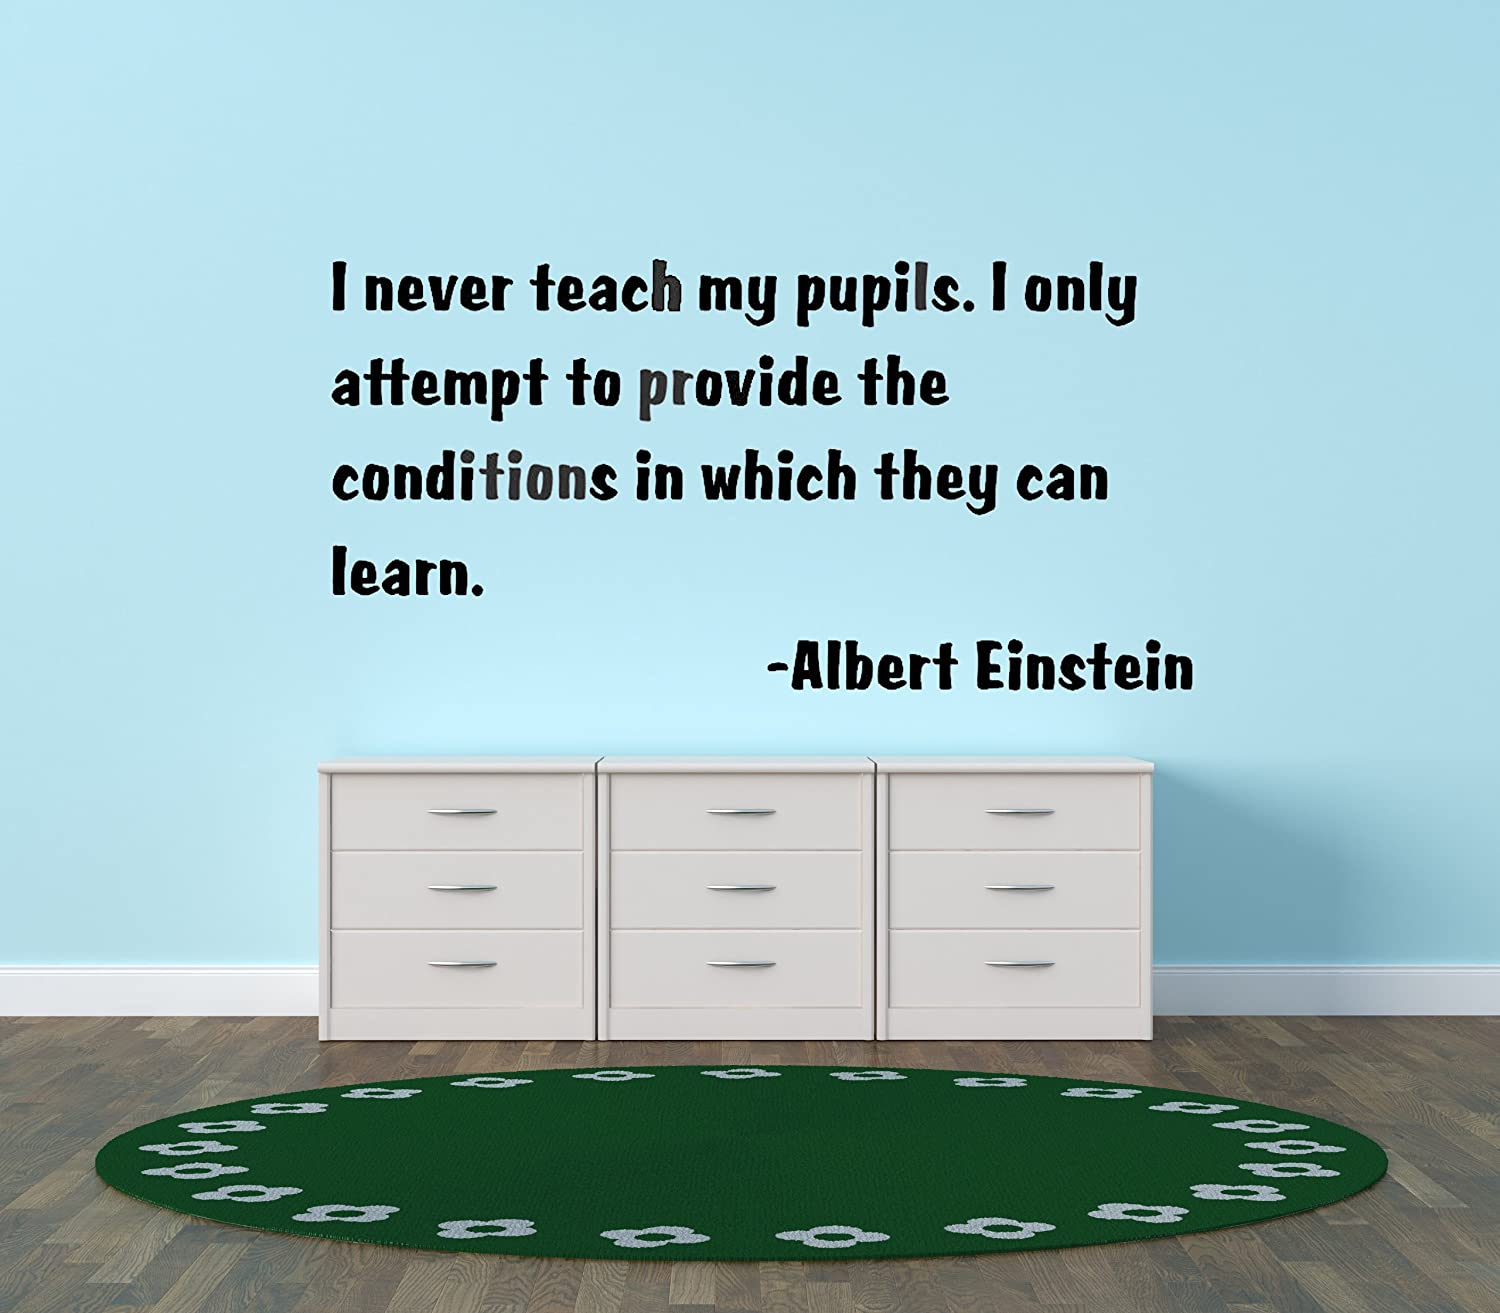 12x40 Color Design with Vinyl I Never Teach My Pupils I Only Attempt To Provide The Conditions In Which They Can Learn Quote Vinyl Wall Decal Sticker Size Black Black